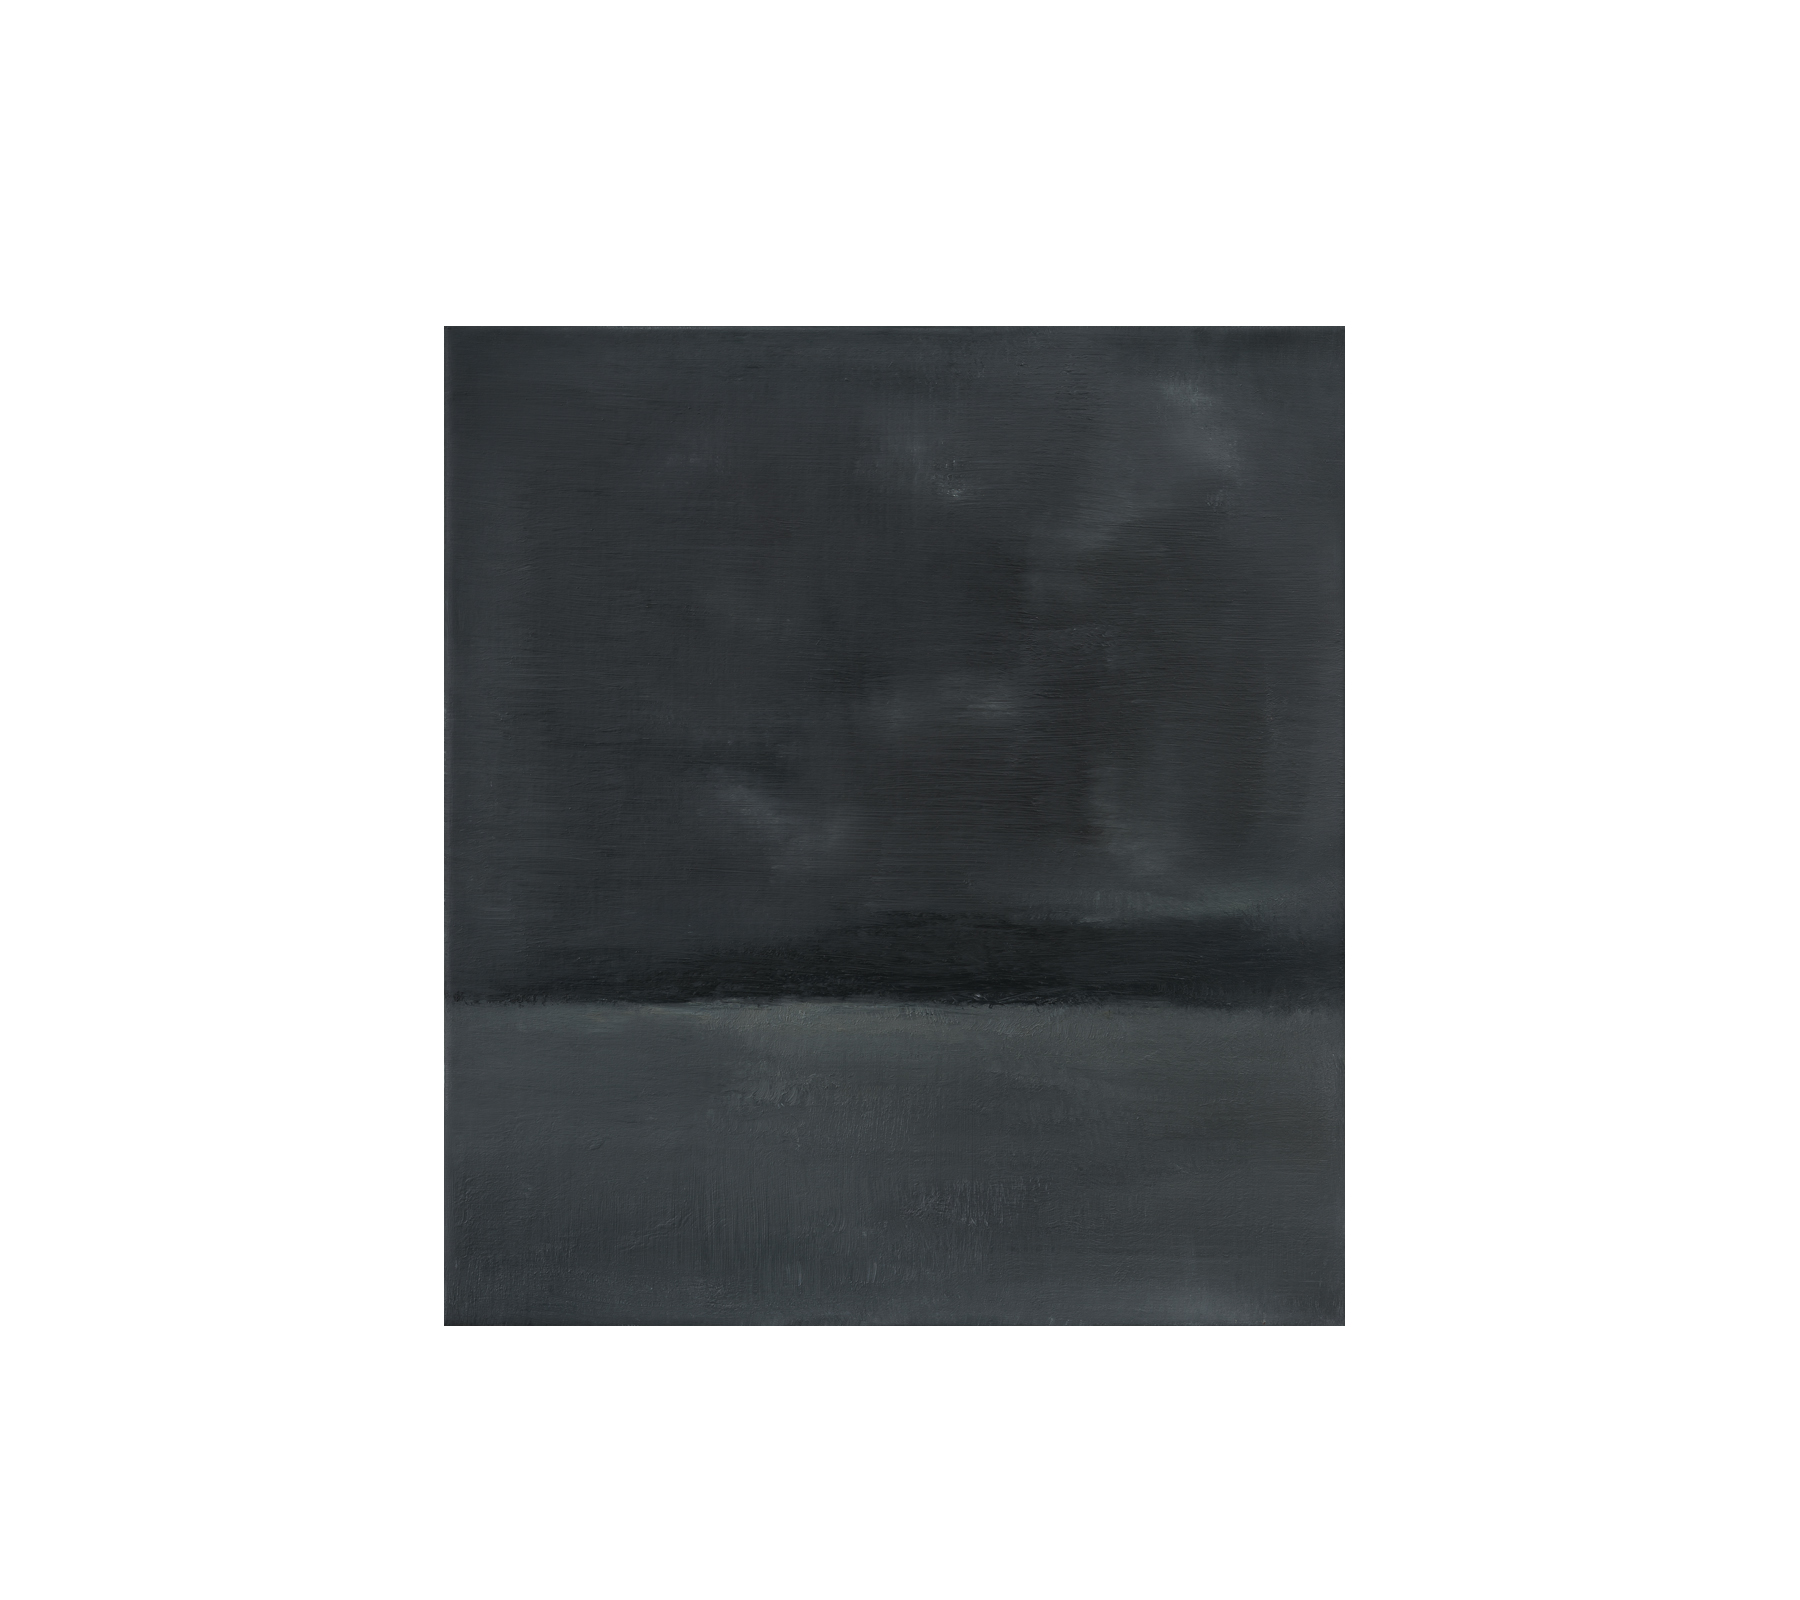 Moonlight 2019 50x45cm